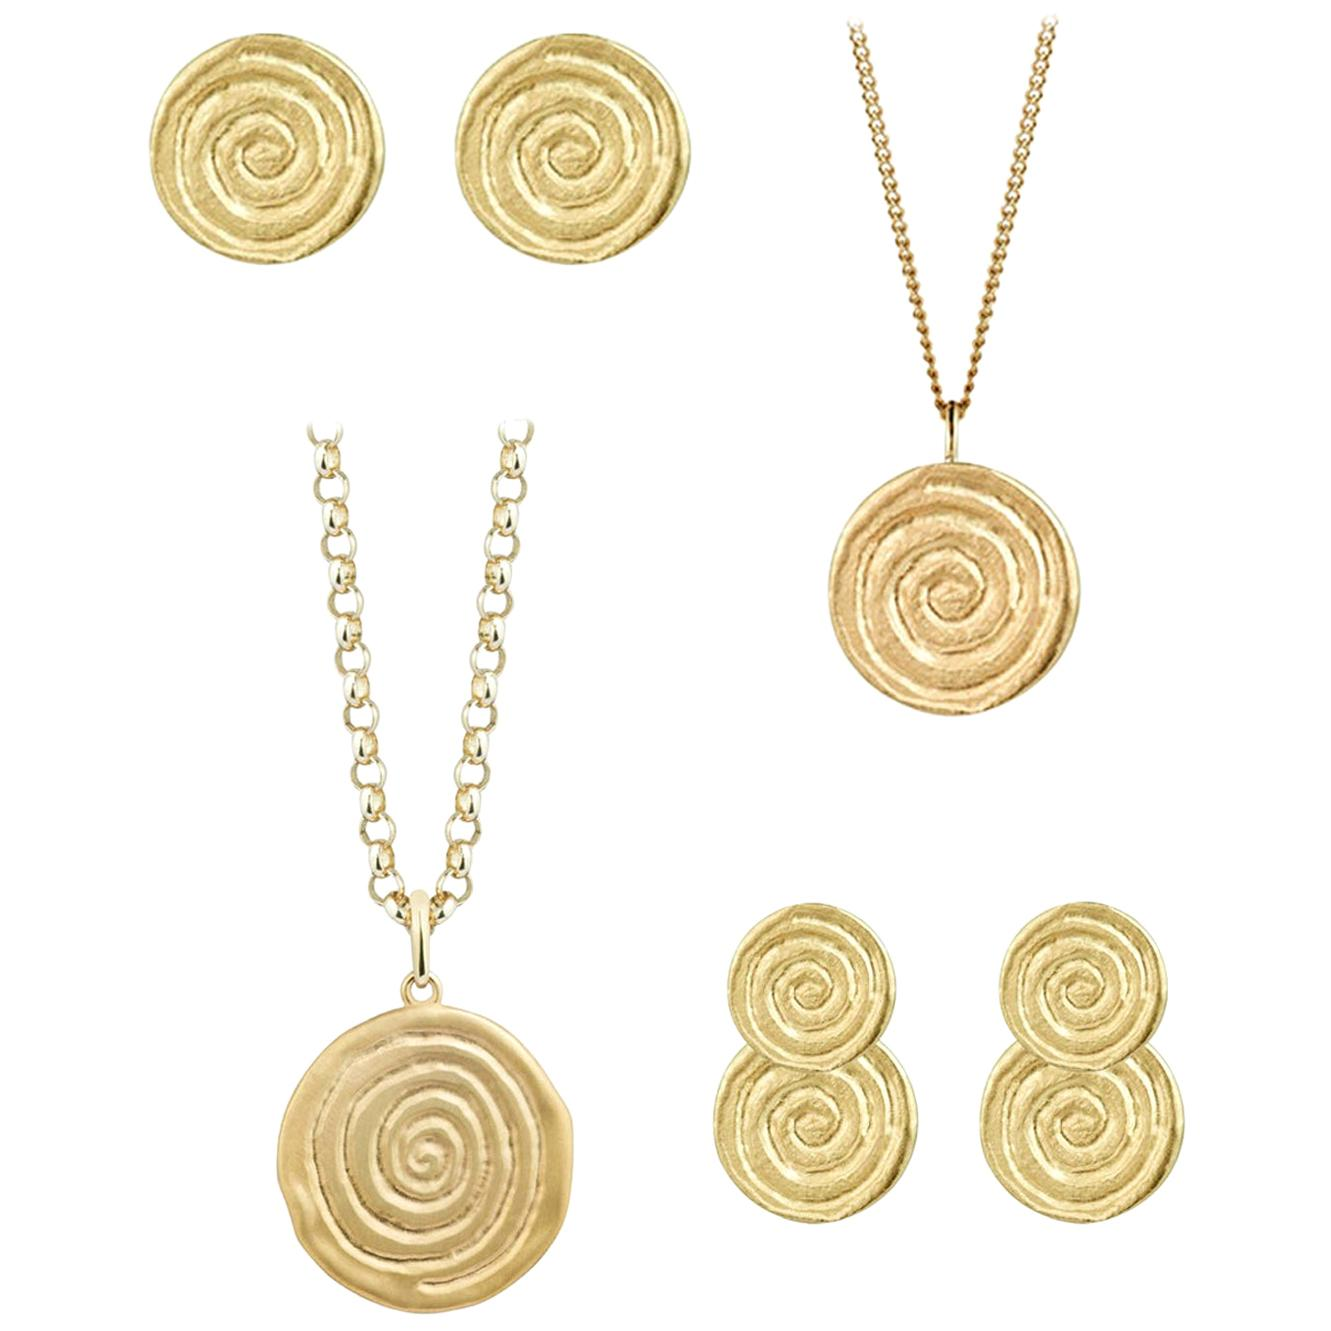 Infinity Spiral Collection 4-Piece Jewelry Suite - Gold Necklace and Earrings